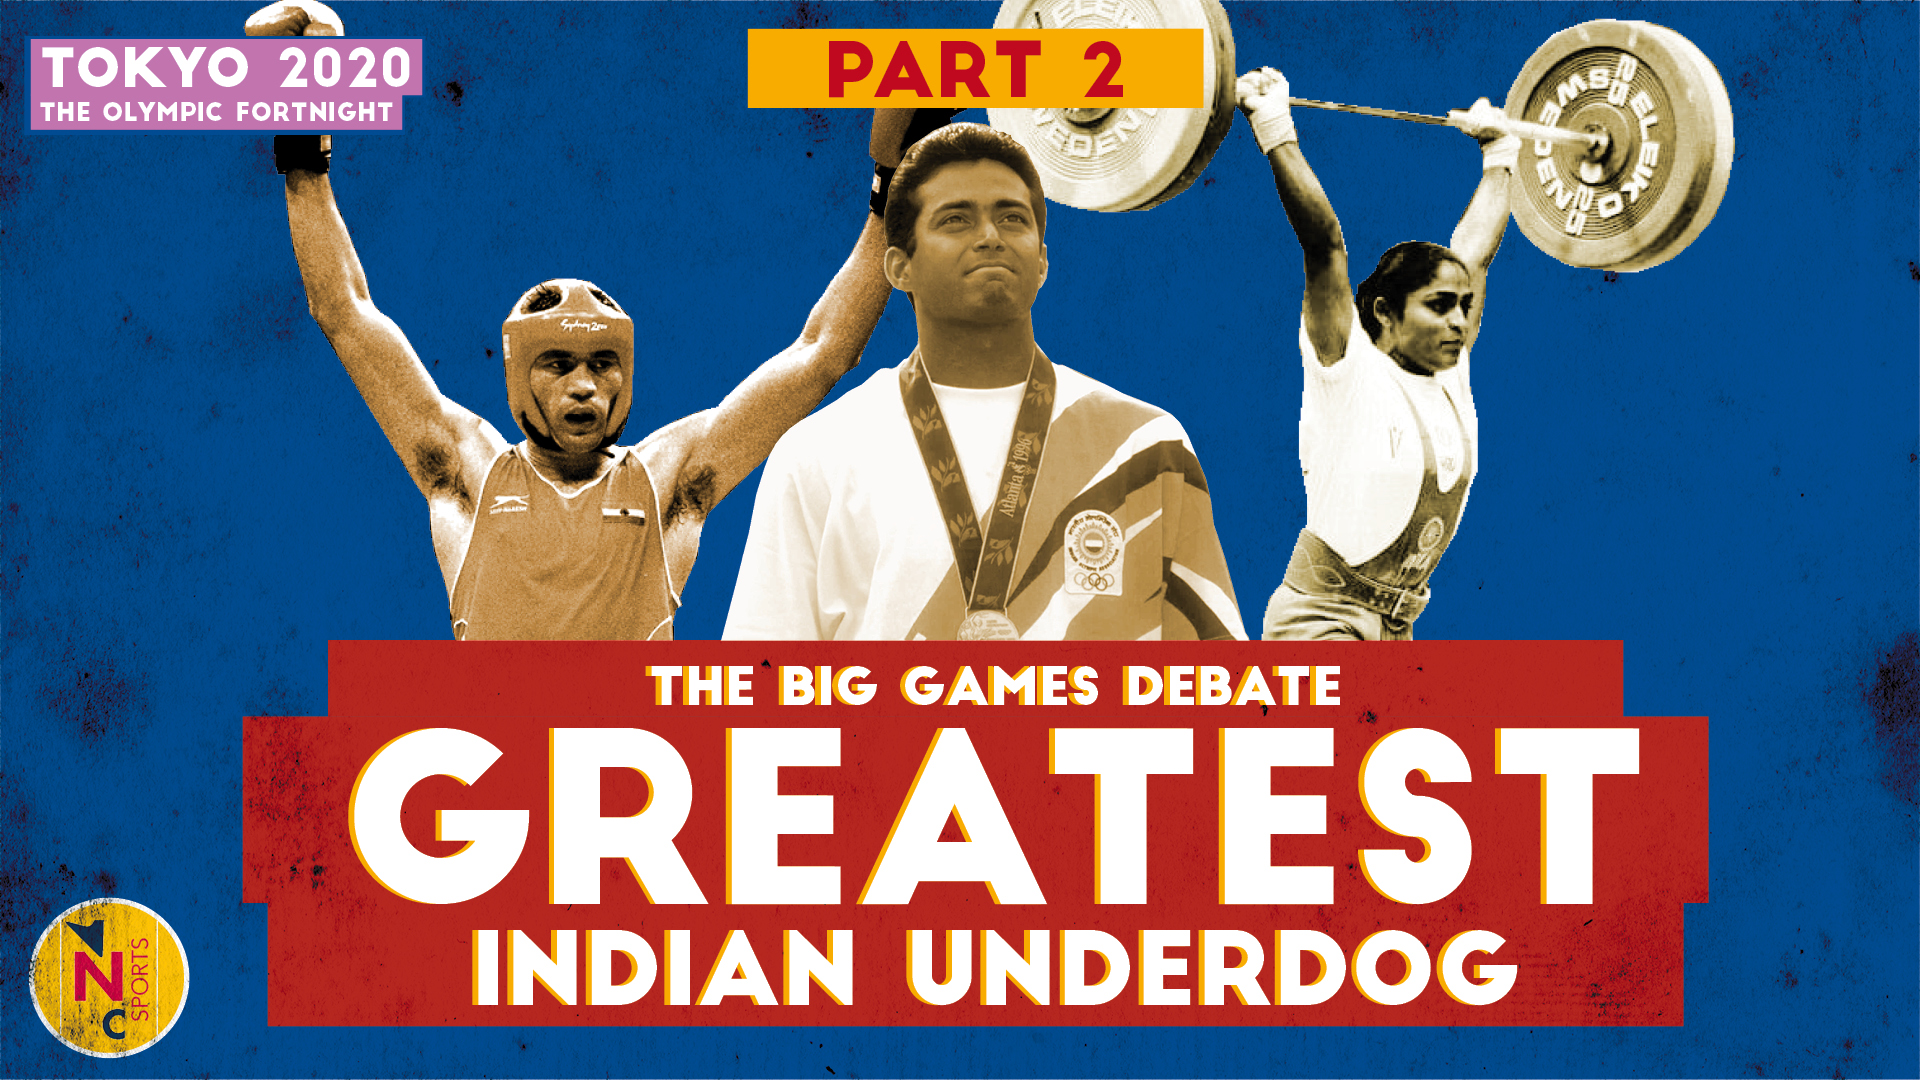 India's greatest Olympic Underdog stories